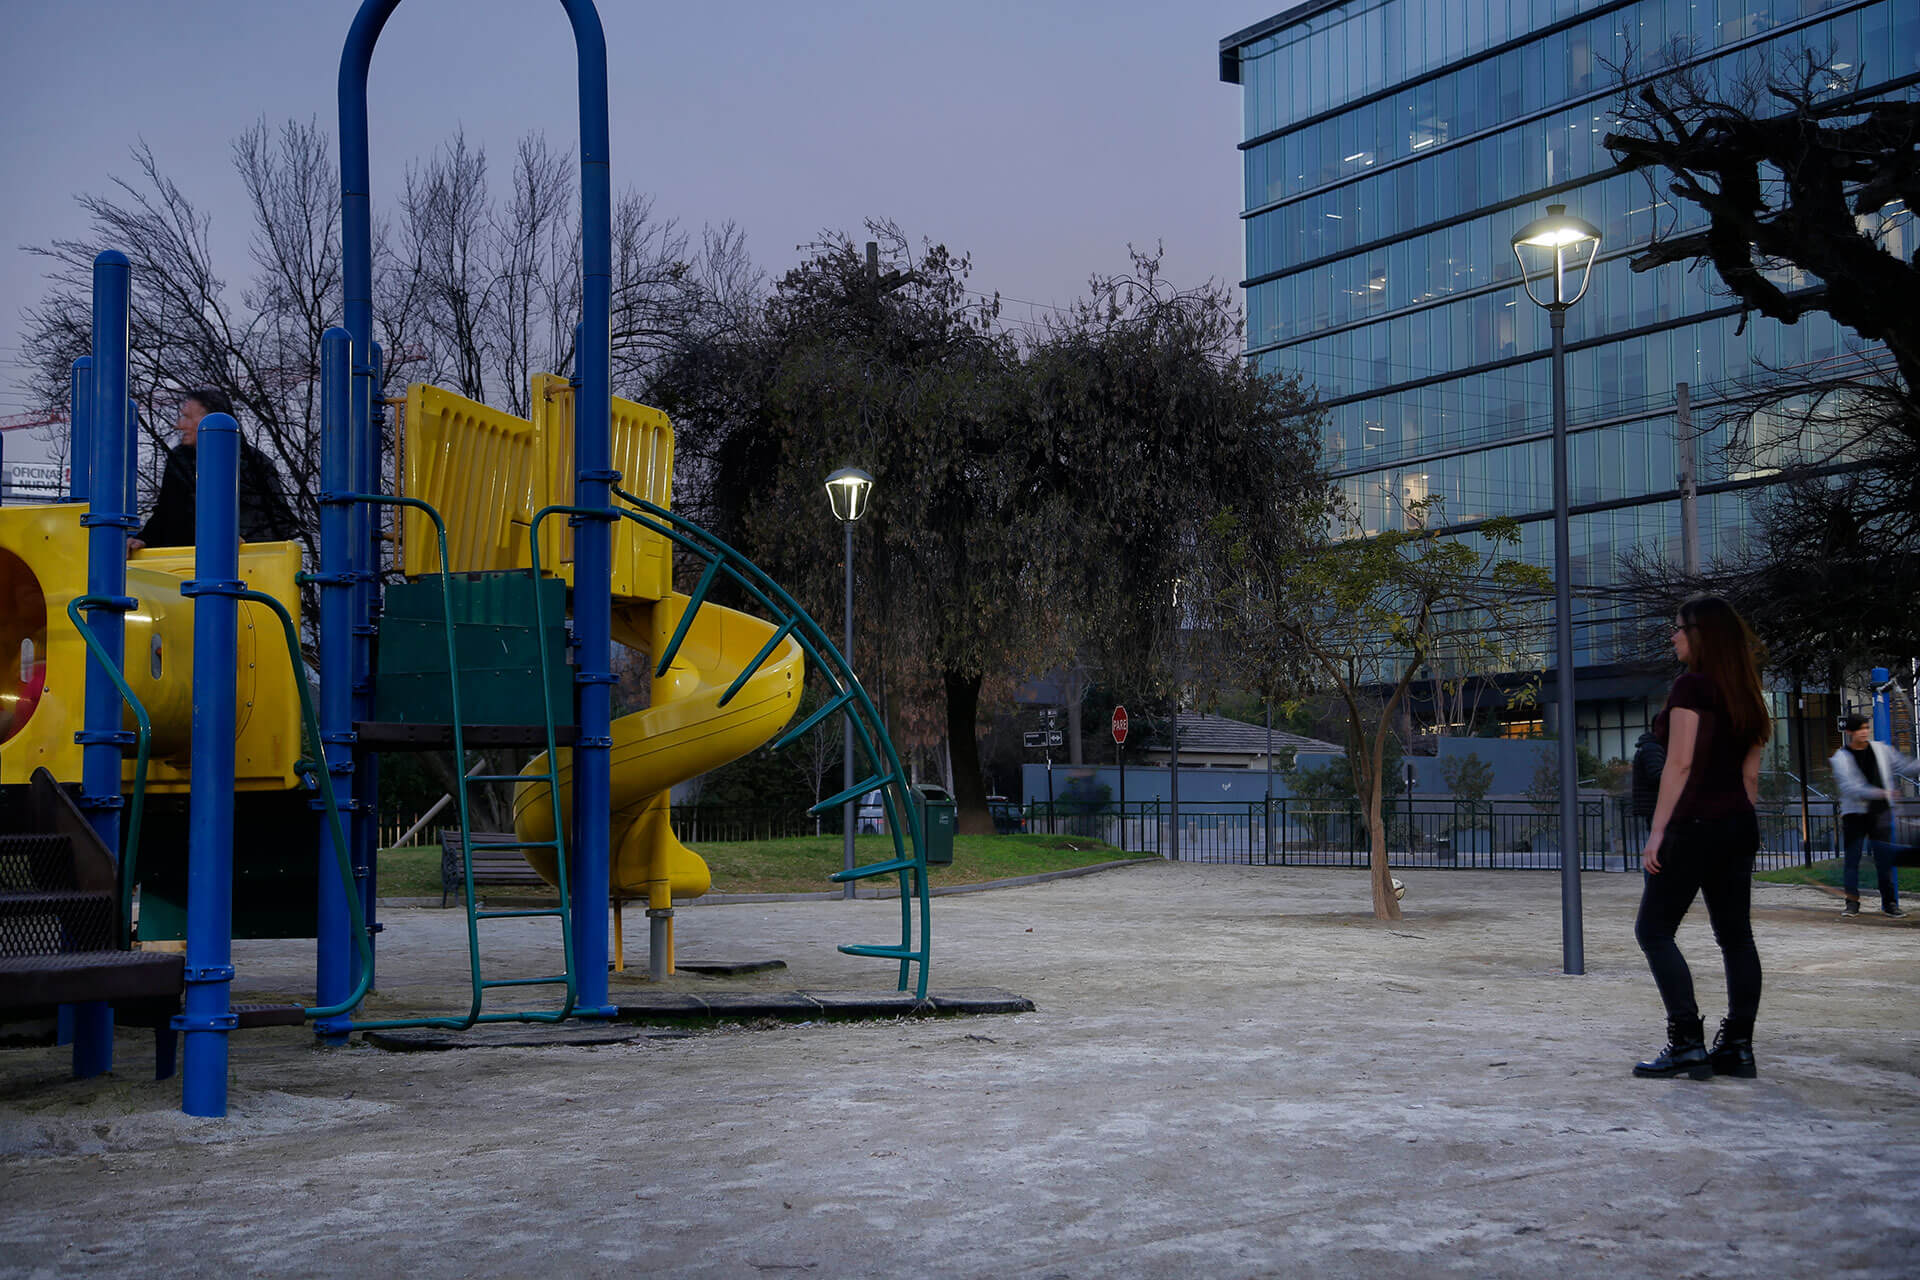 Owlet control system dims the light in the parks at Vitacura when no-one is around to reduce energy costs